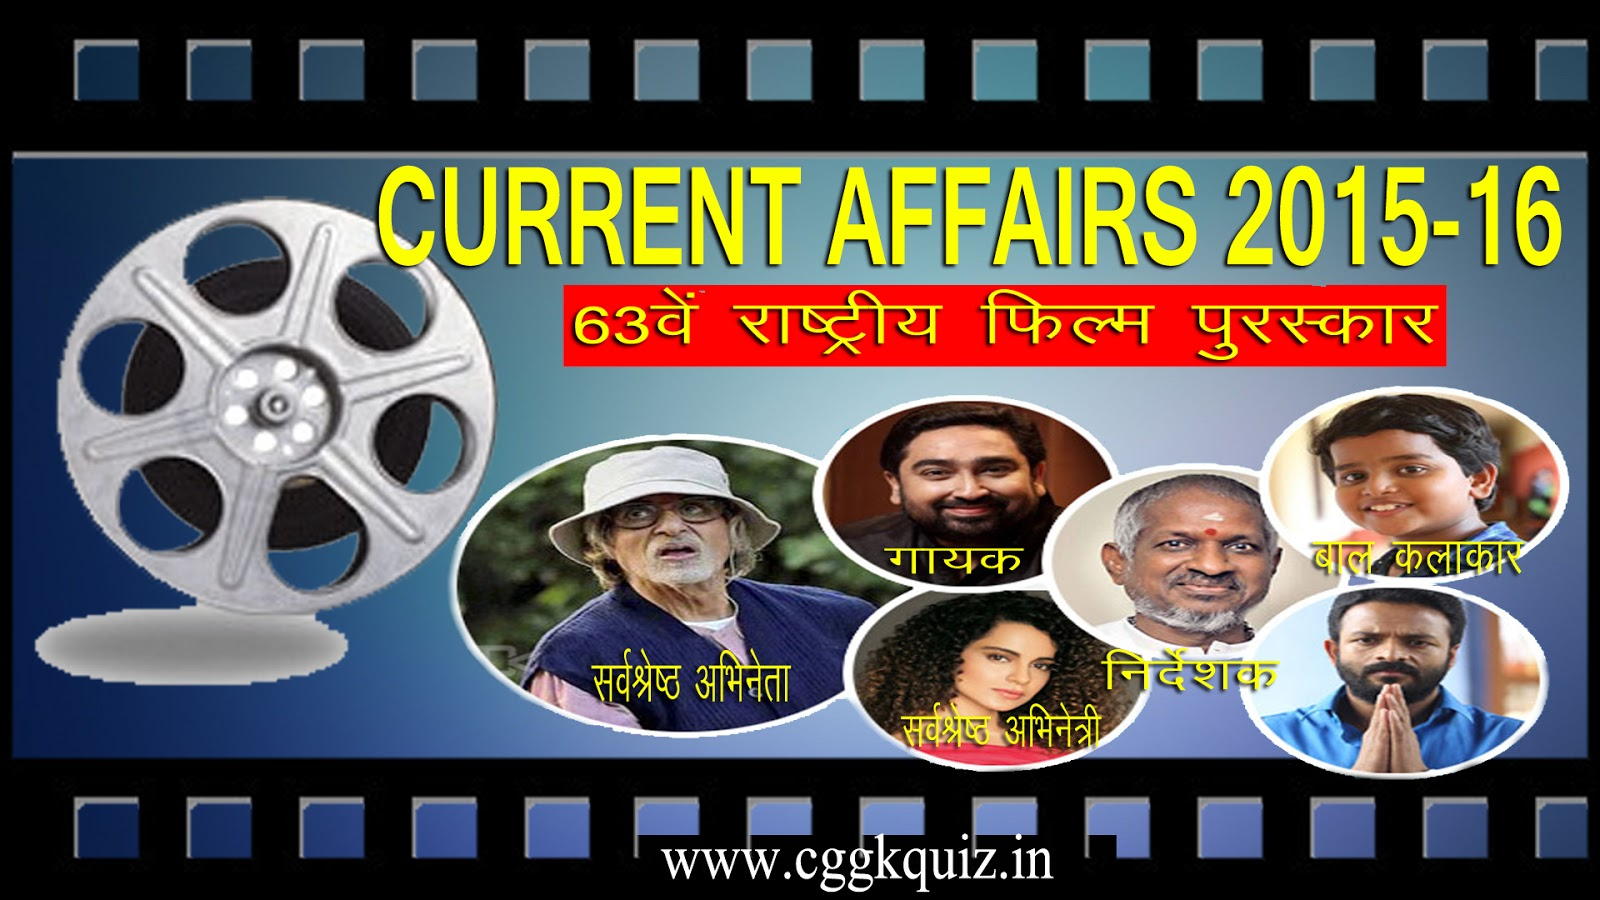 Current Affairs in Hindi - National Film Fare Awards in Hindi